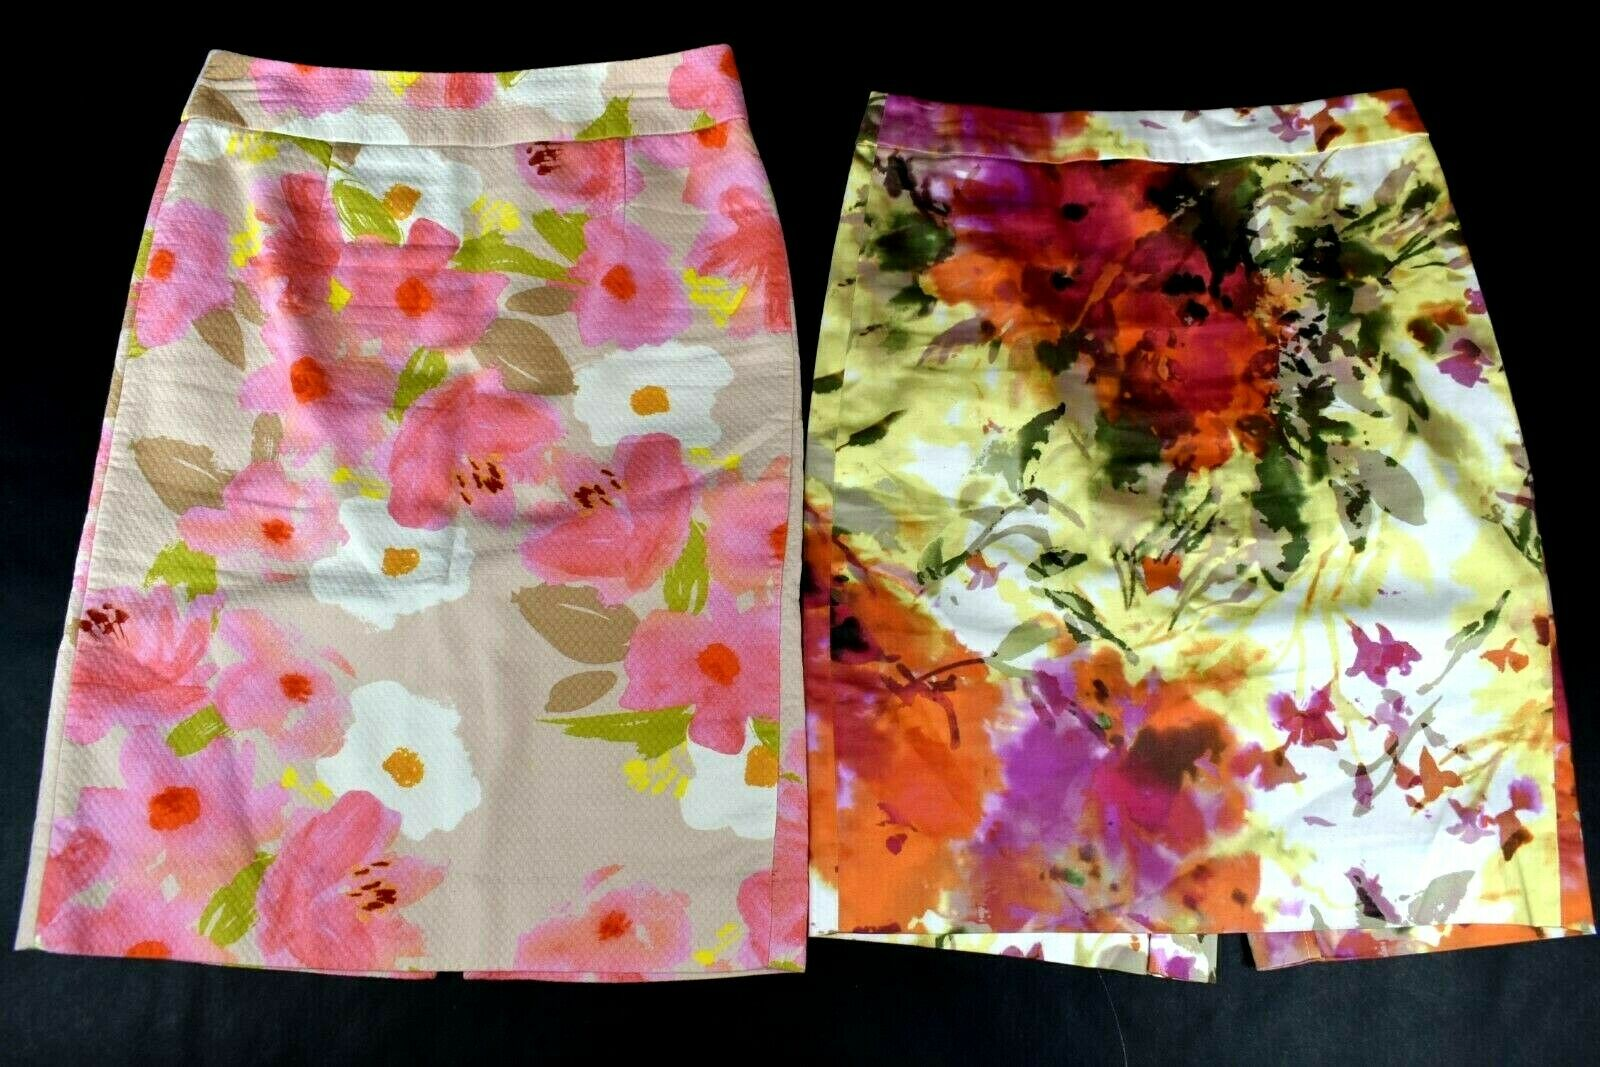 J Crew Size 2 The Pencil Skirt colorful Floral Skirts Lot of 2